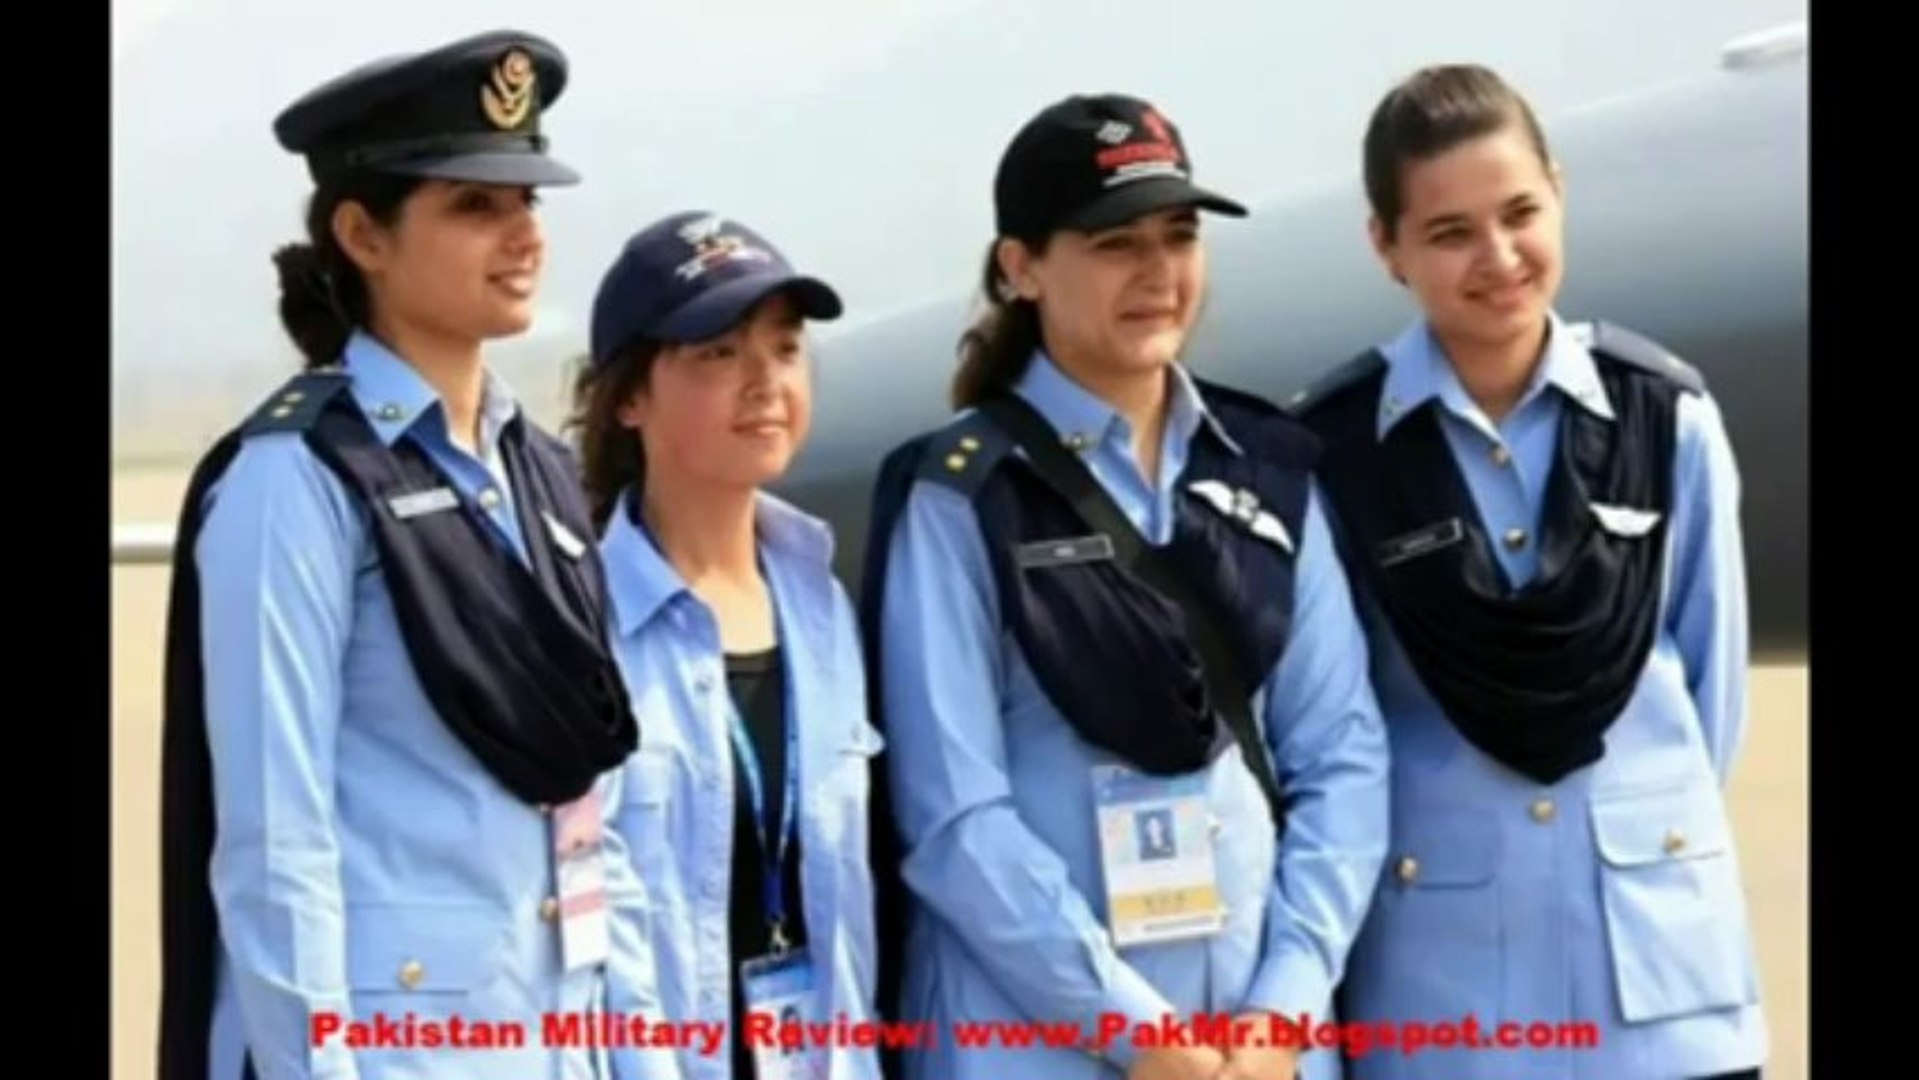 Pakistan Female Army